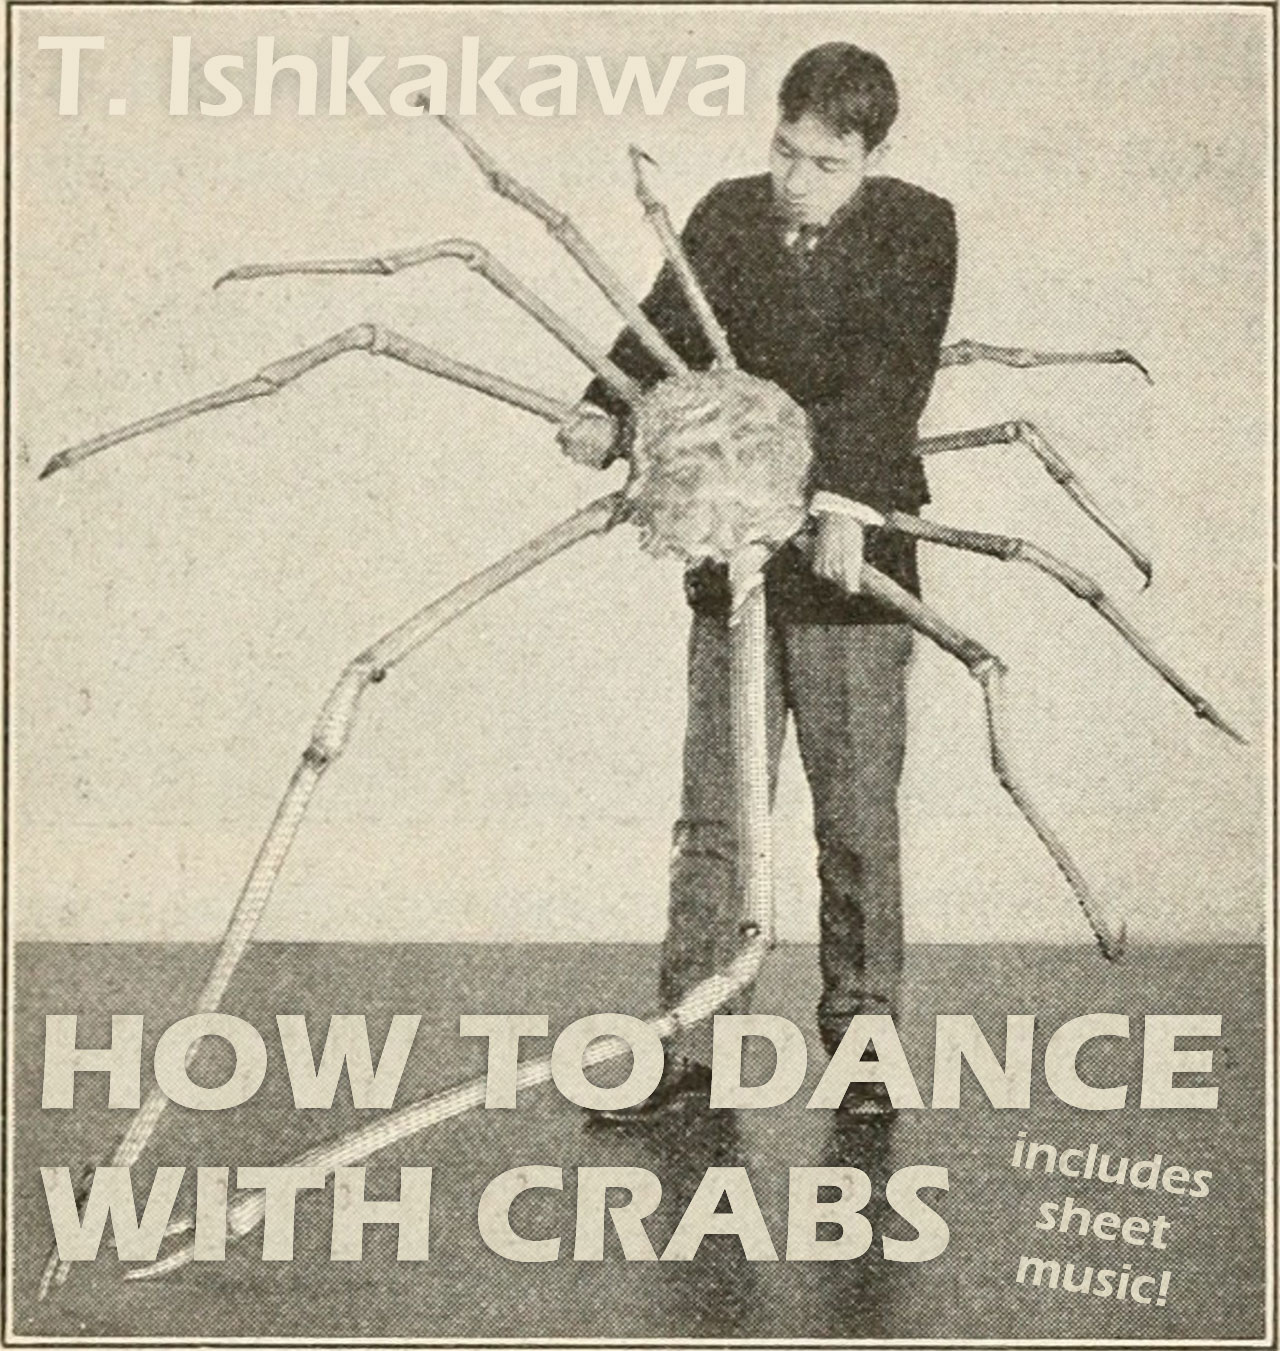 How to dance with crabs © Graeme Walker / The Pebble Museum 2019